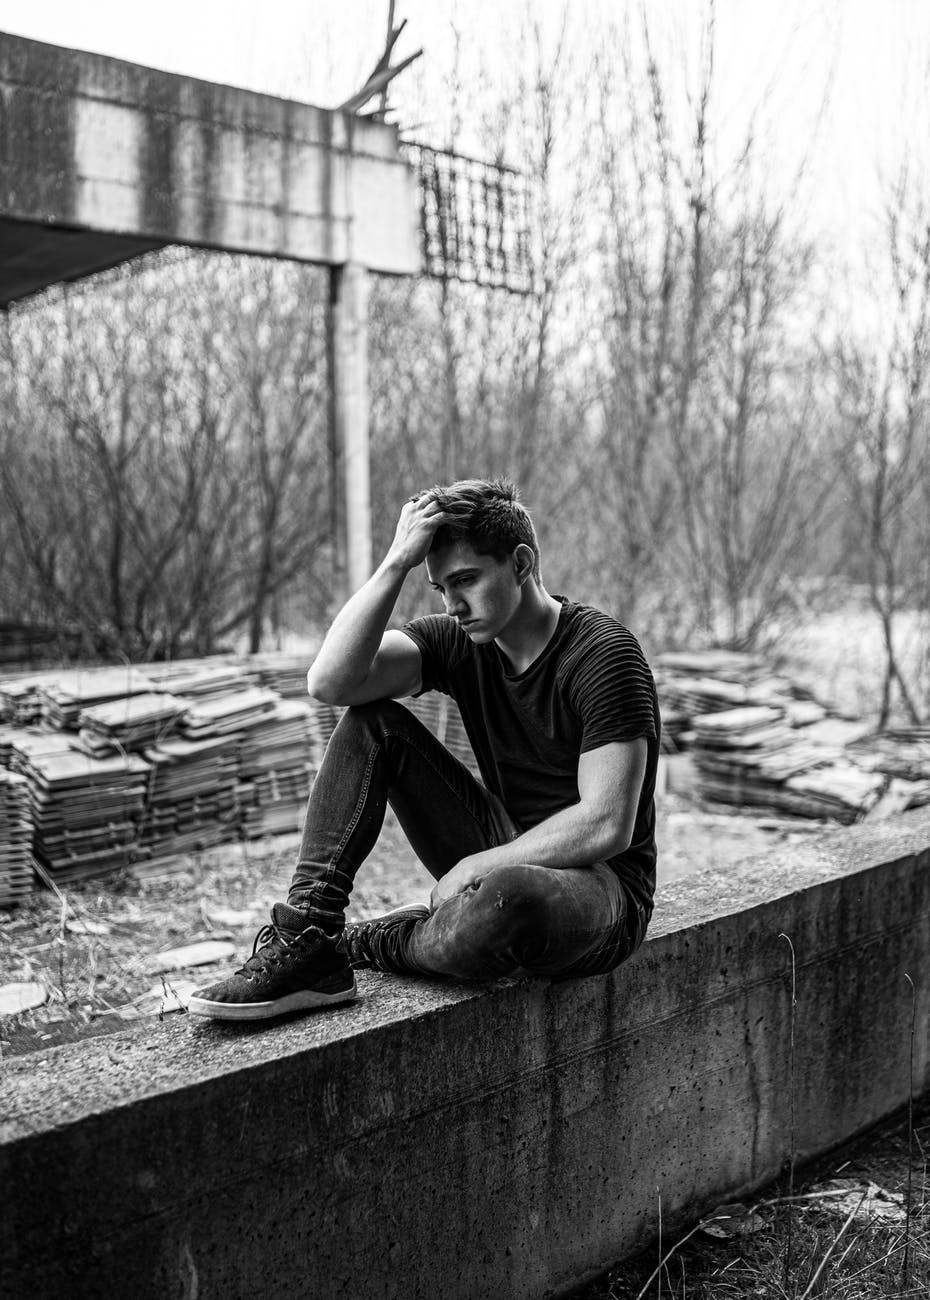 man sitting on concrete bench - He may not talk about it, but he also feels lost, down, and internally broken. Read about a writer who has decided to speak up about his struggles with mental illness. | #MentalIllness #bipolar #mentalillnessawareness